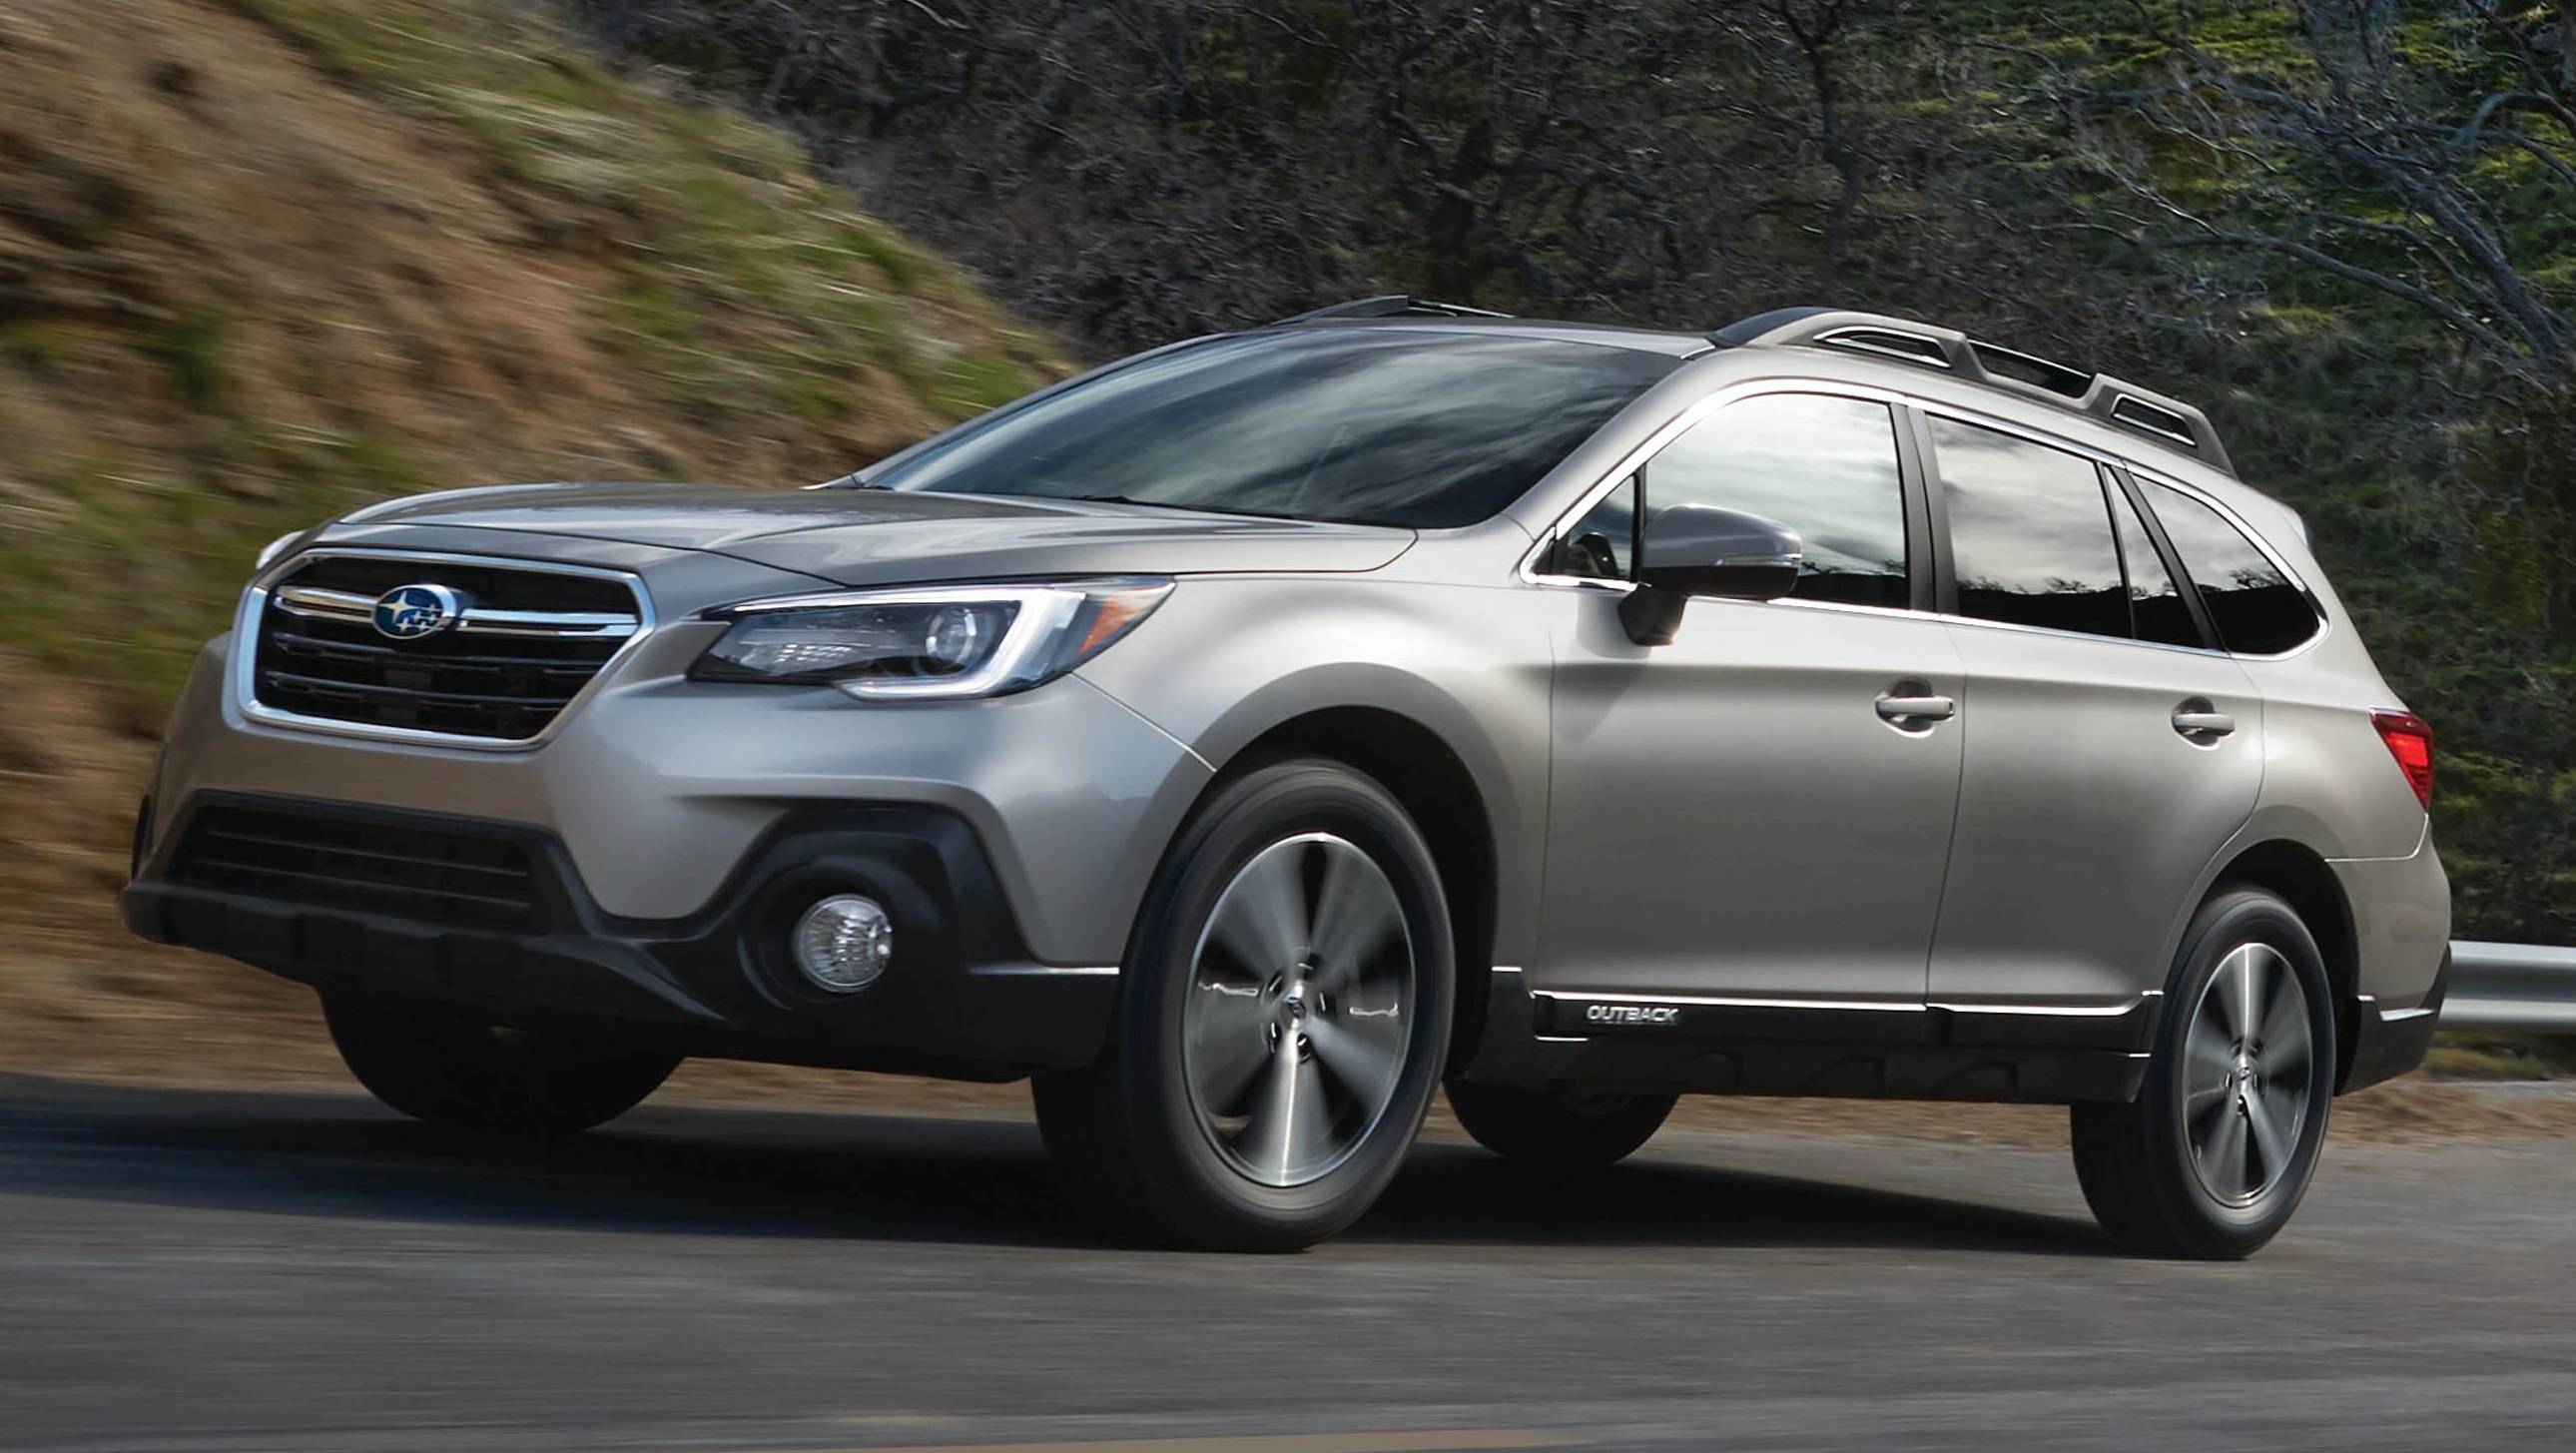 2018 Subaru Outback facelift gets Legacy's upgrades Image ...